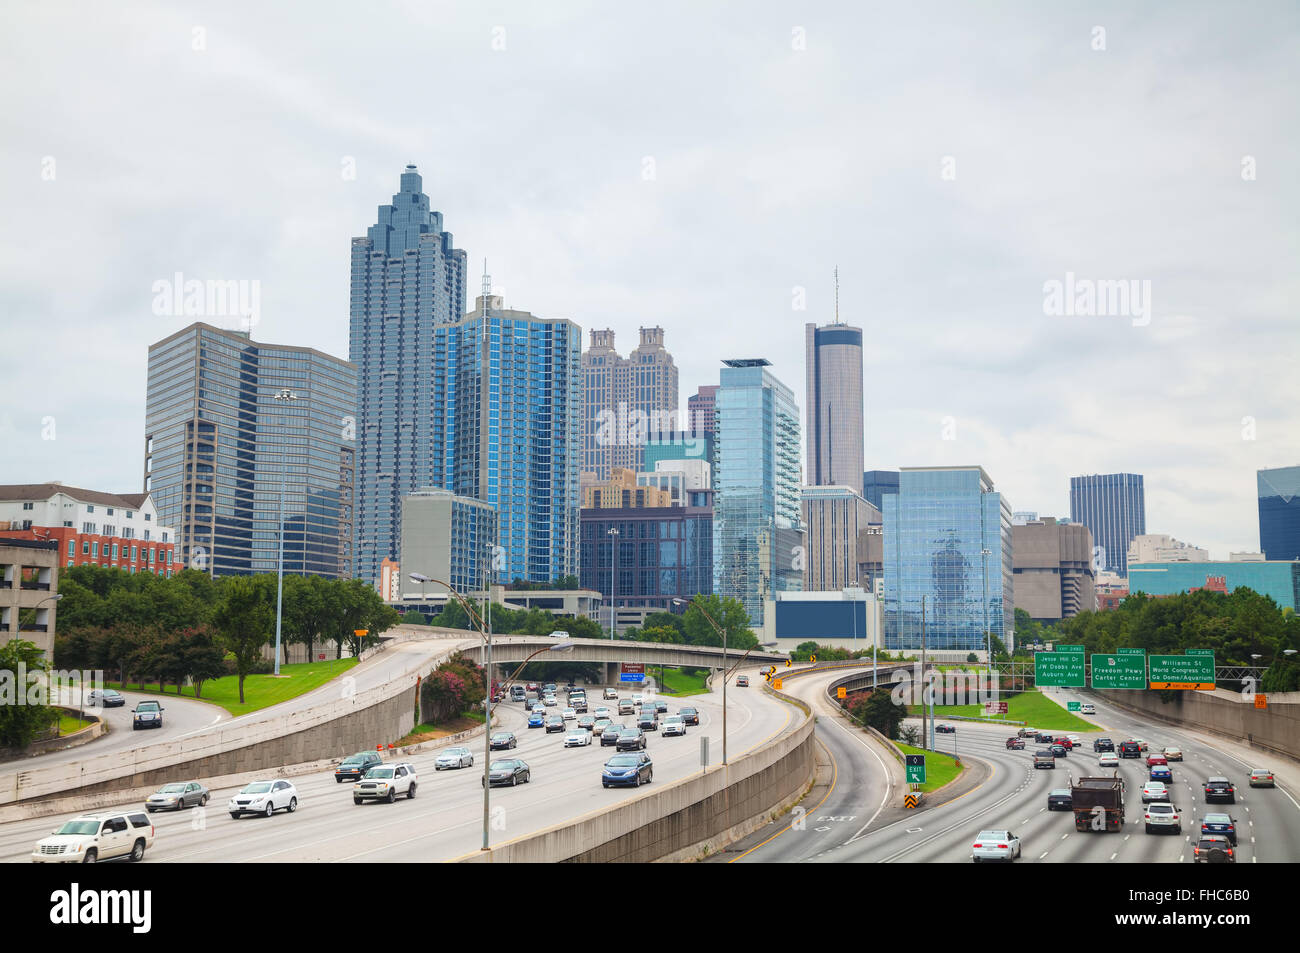 Downtown Atlanta, Georgia on a cloudy day - Stock Image